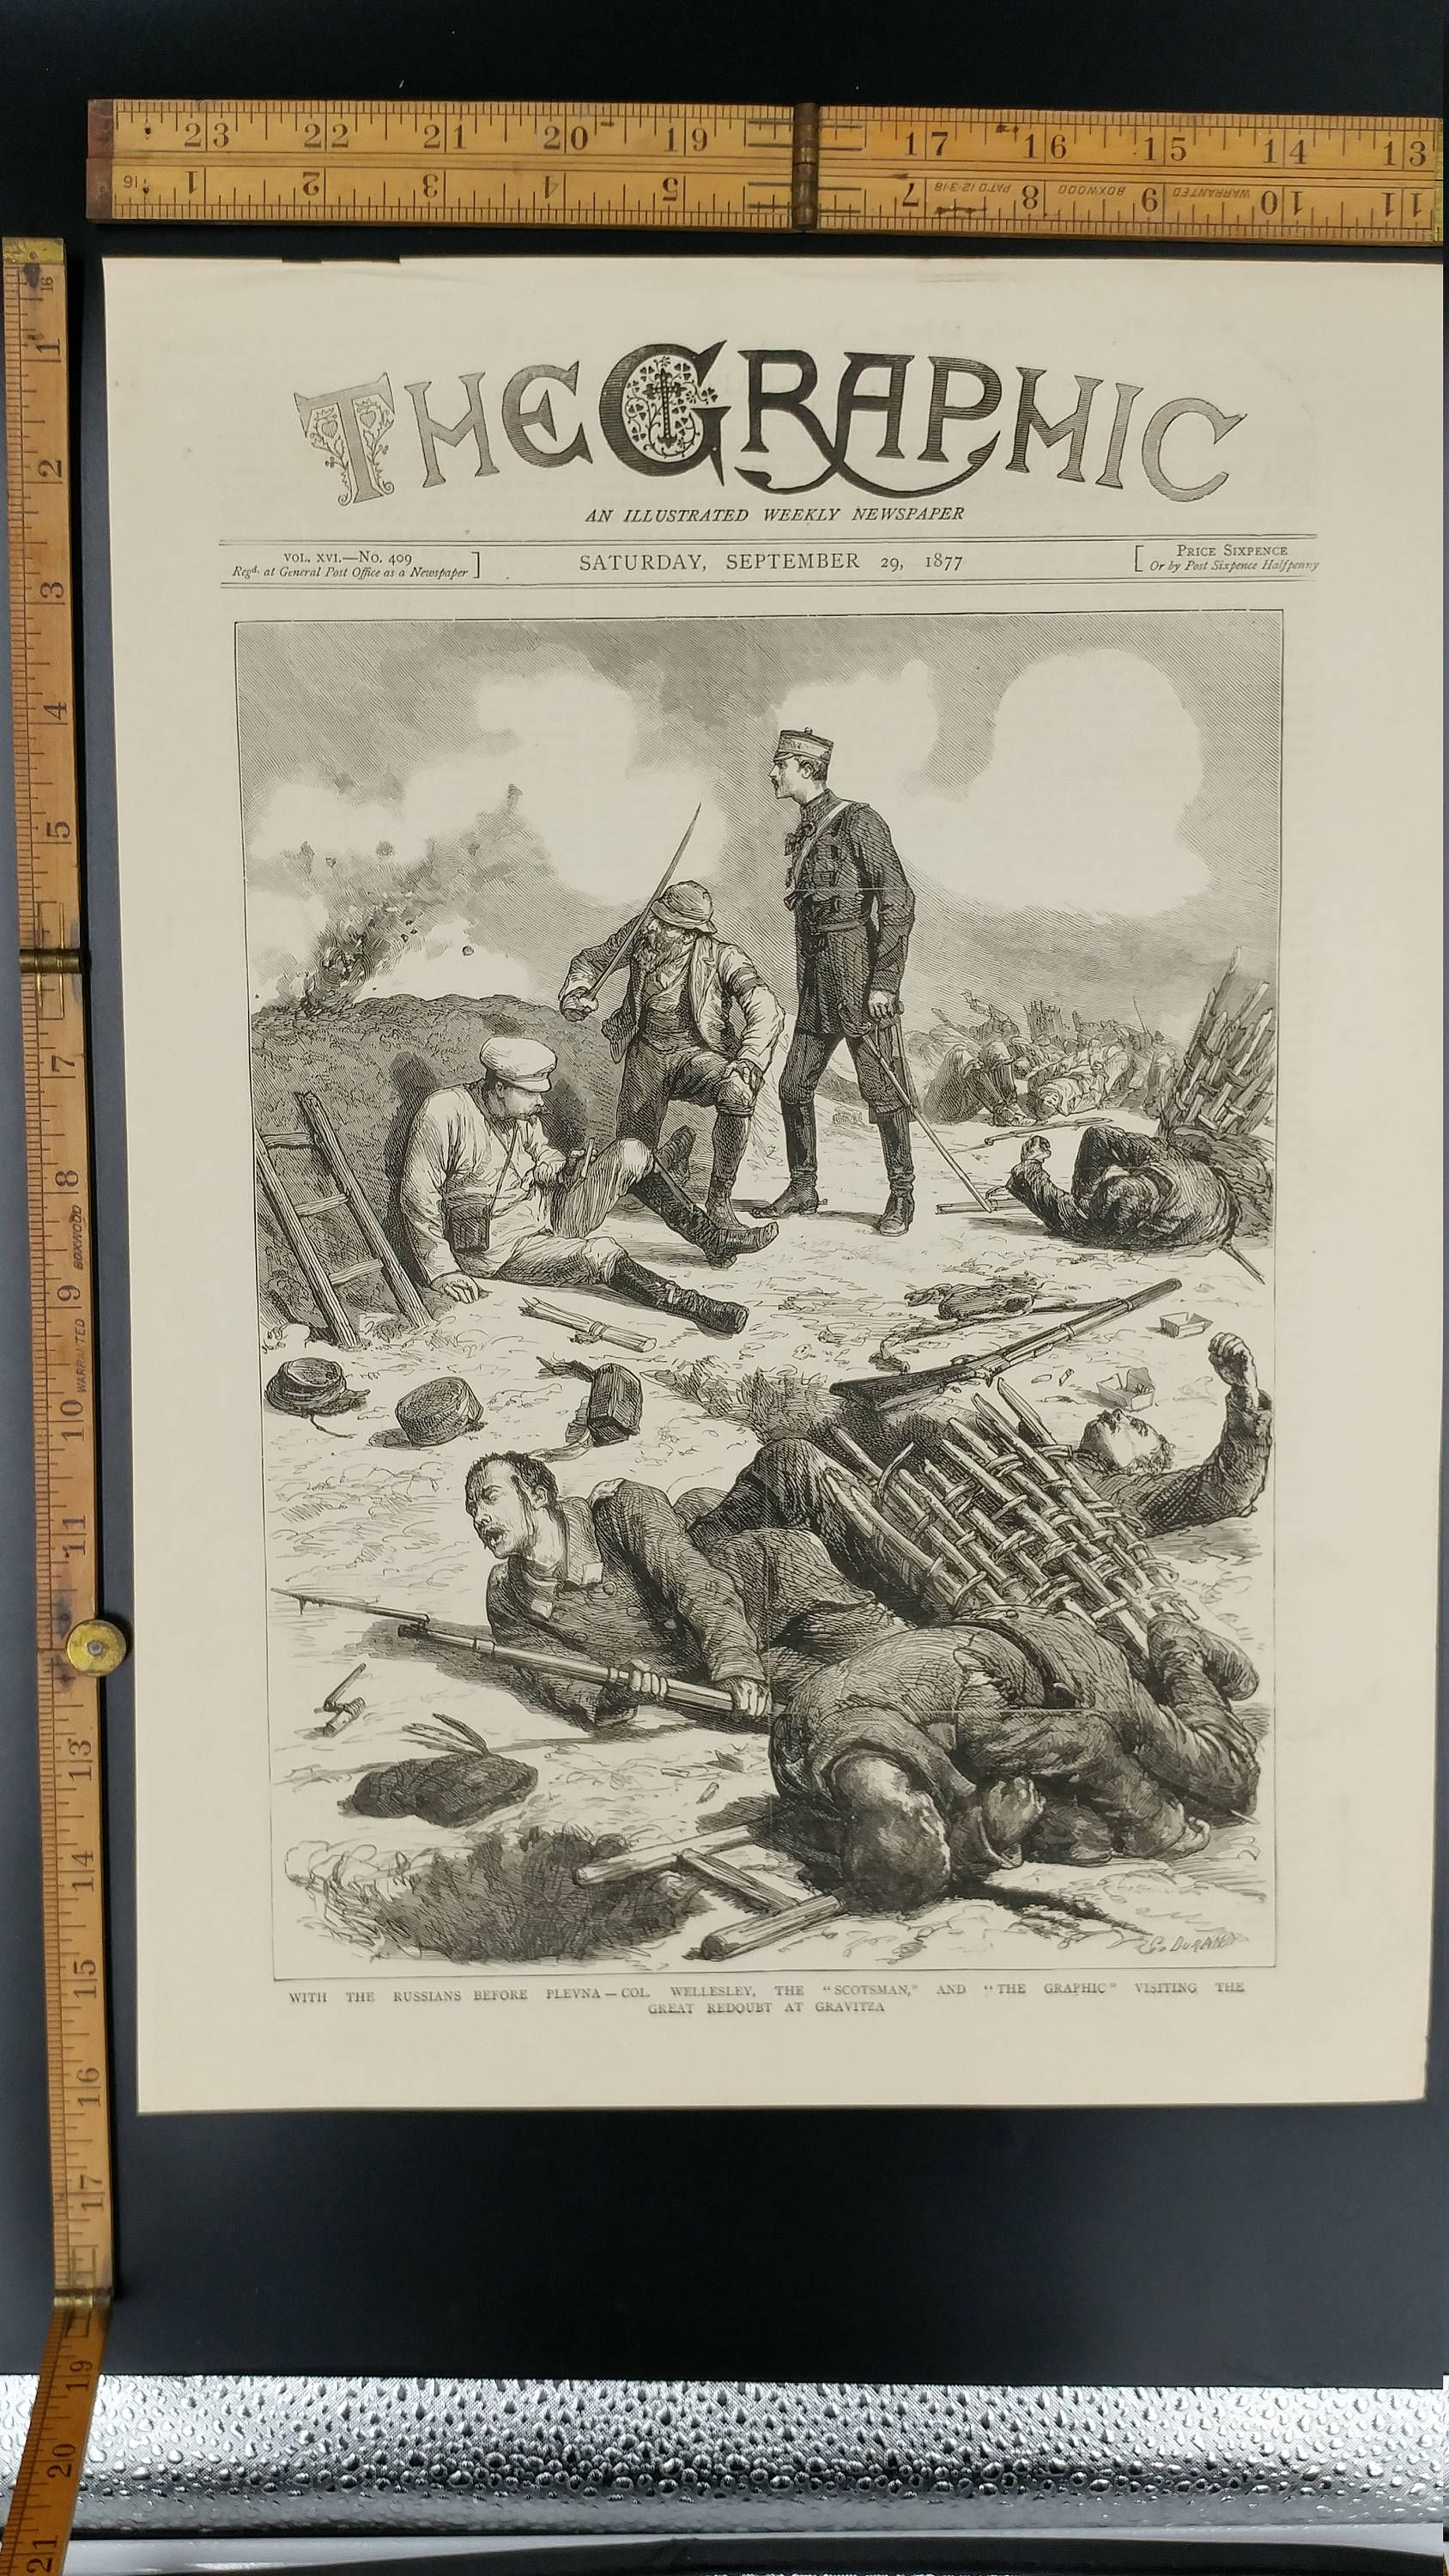 Large Antique Engraving Col Wellesley the Scotsman With the Russians before Plevna 1877 The Great Redoubt at Gravitsa Intense War